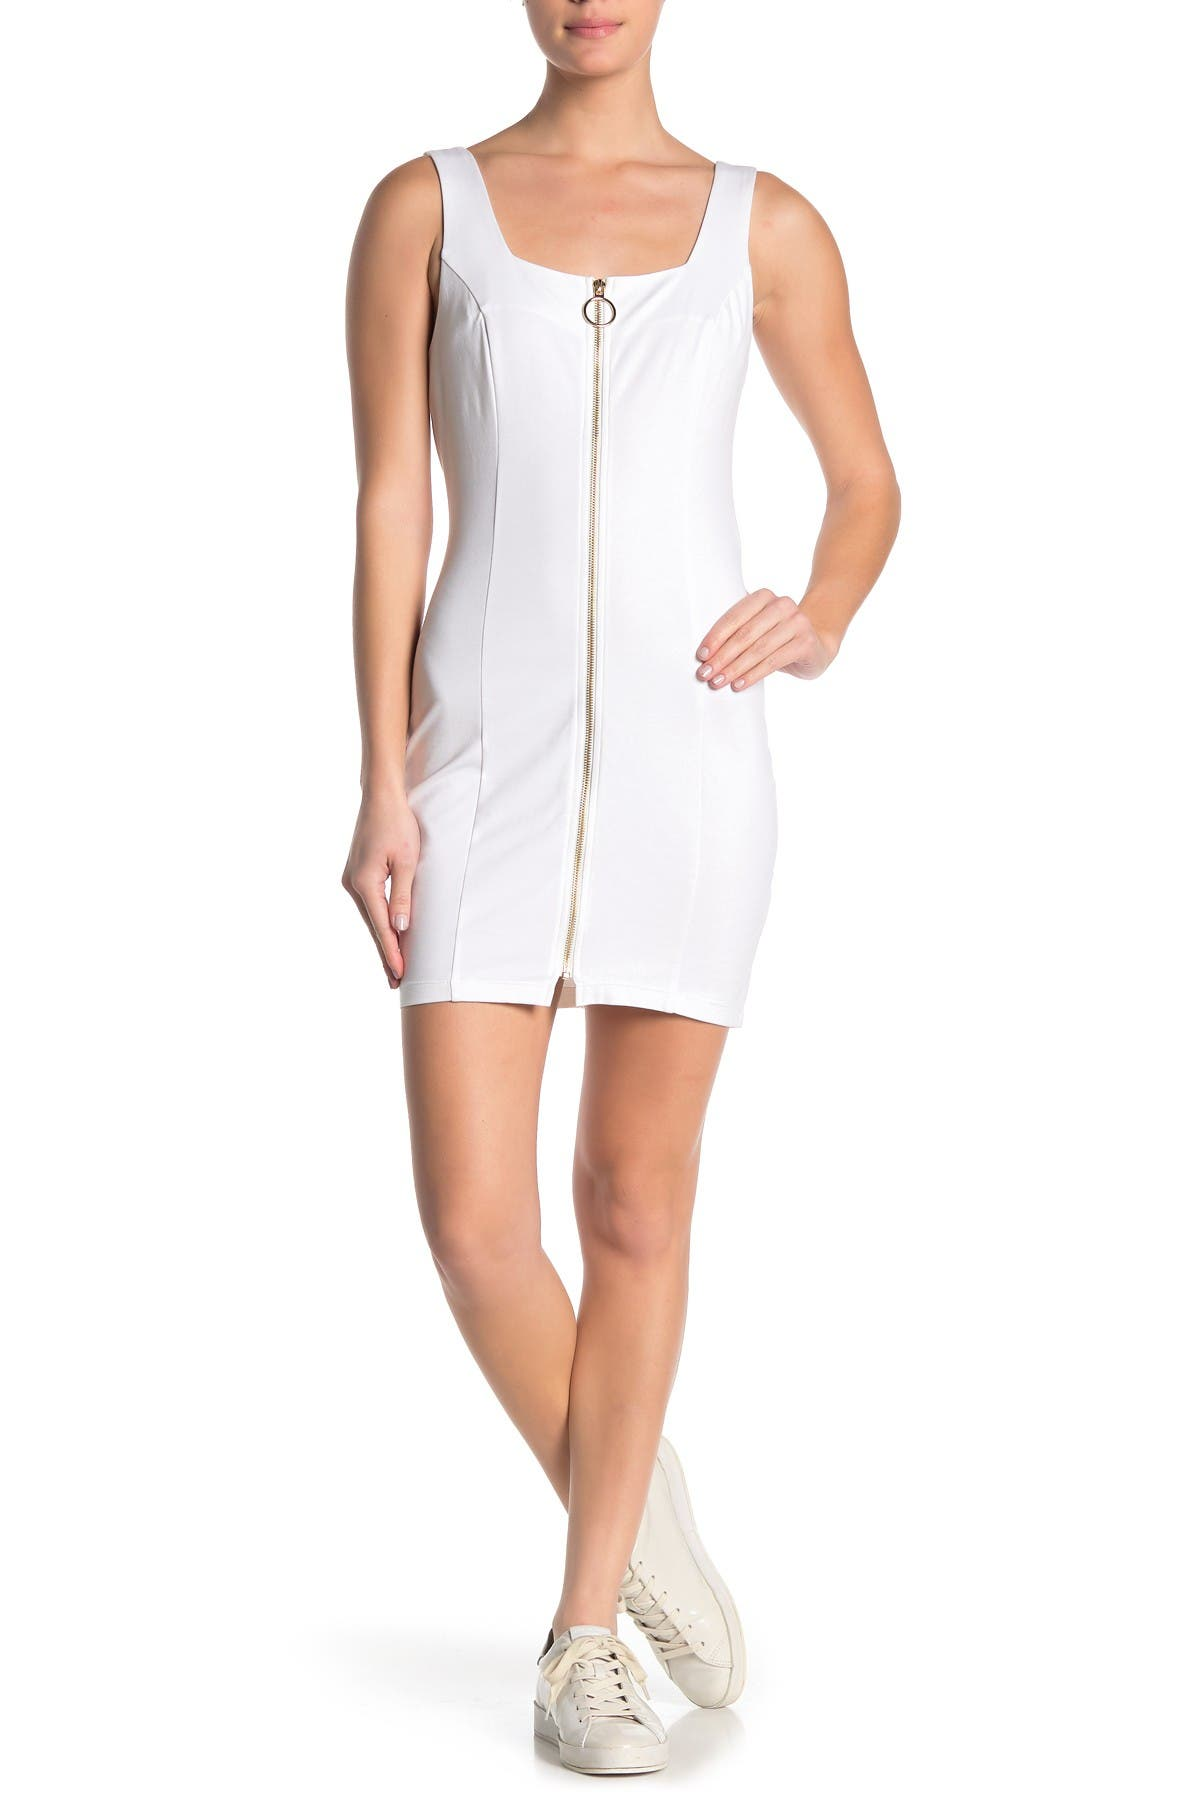 Image of BAILEY BLUE Square Neck Zip Front Ponte Dress